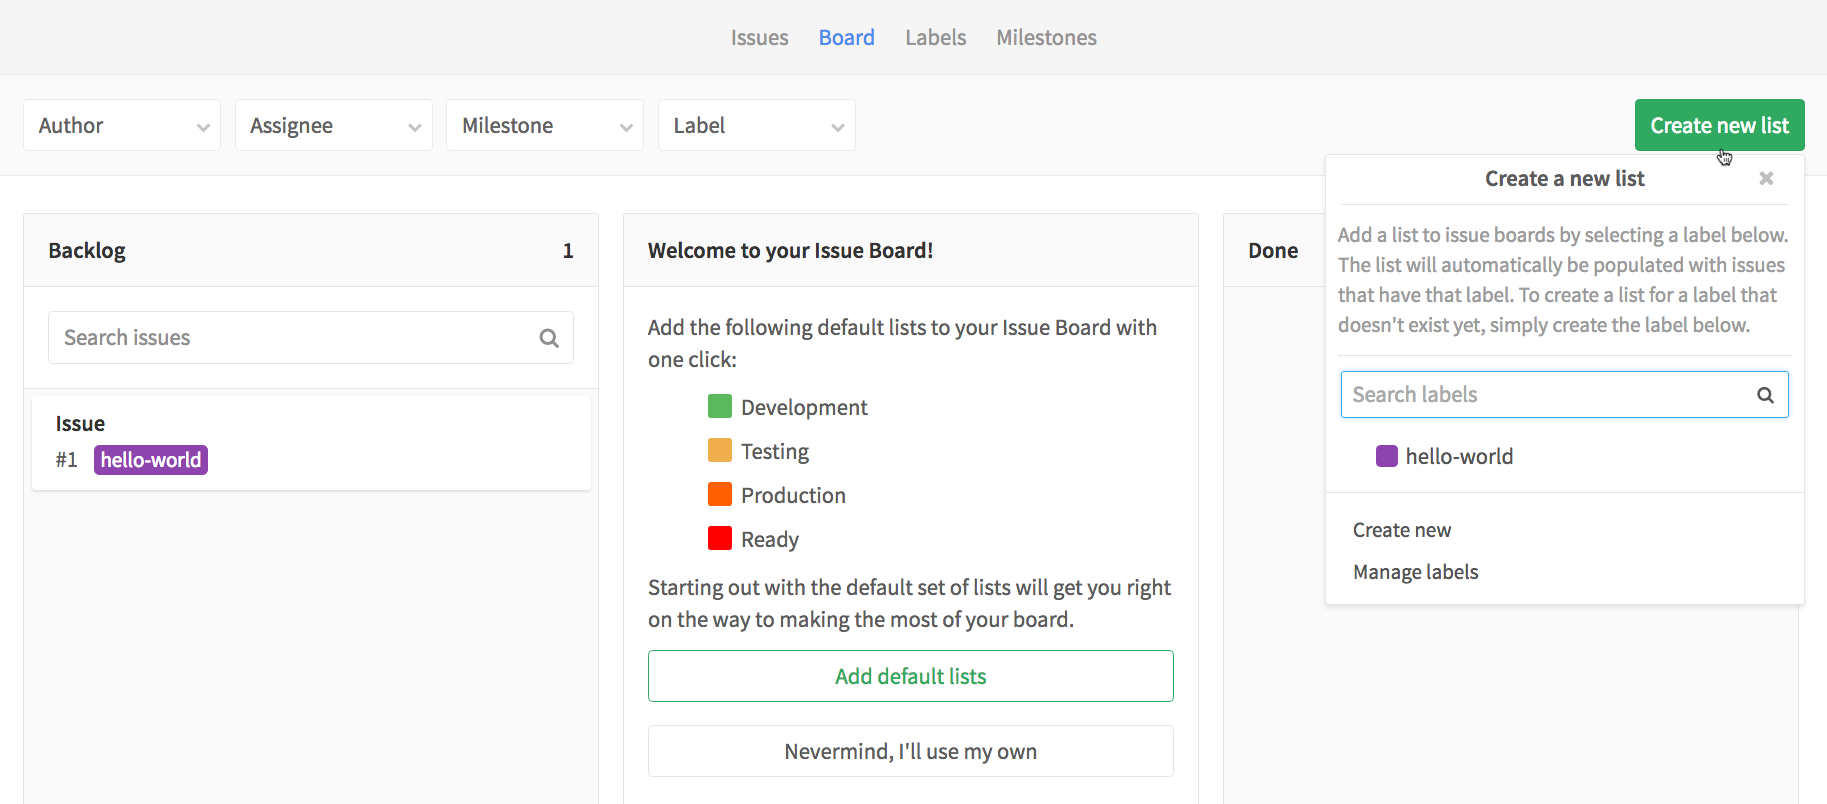 For teams who are just adopting GitLab or what to standardize their process, the Issue Board also offers default Lists that can be used to create an Issue Board in one click.